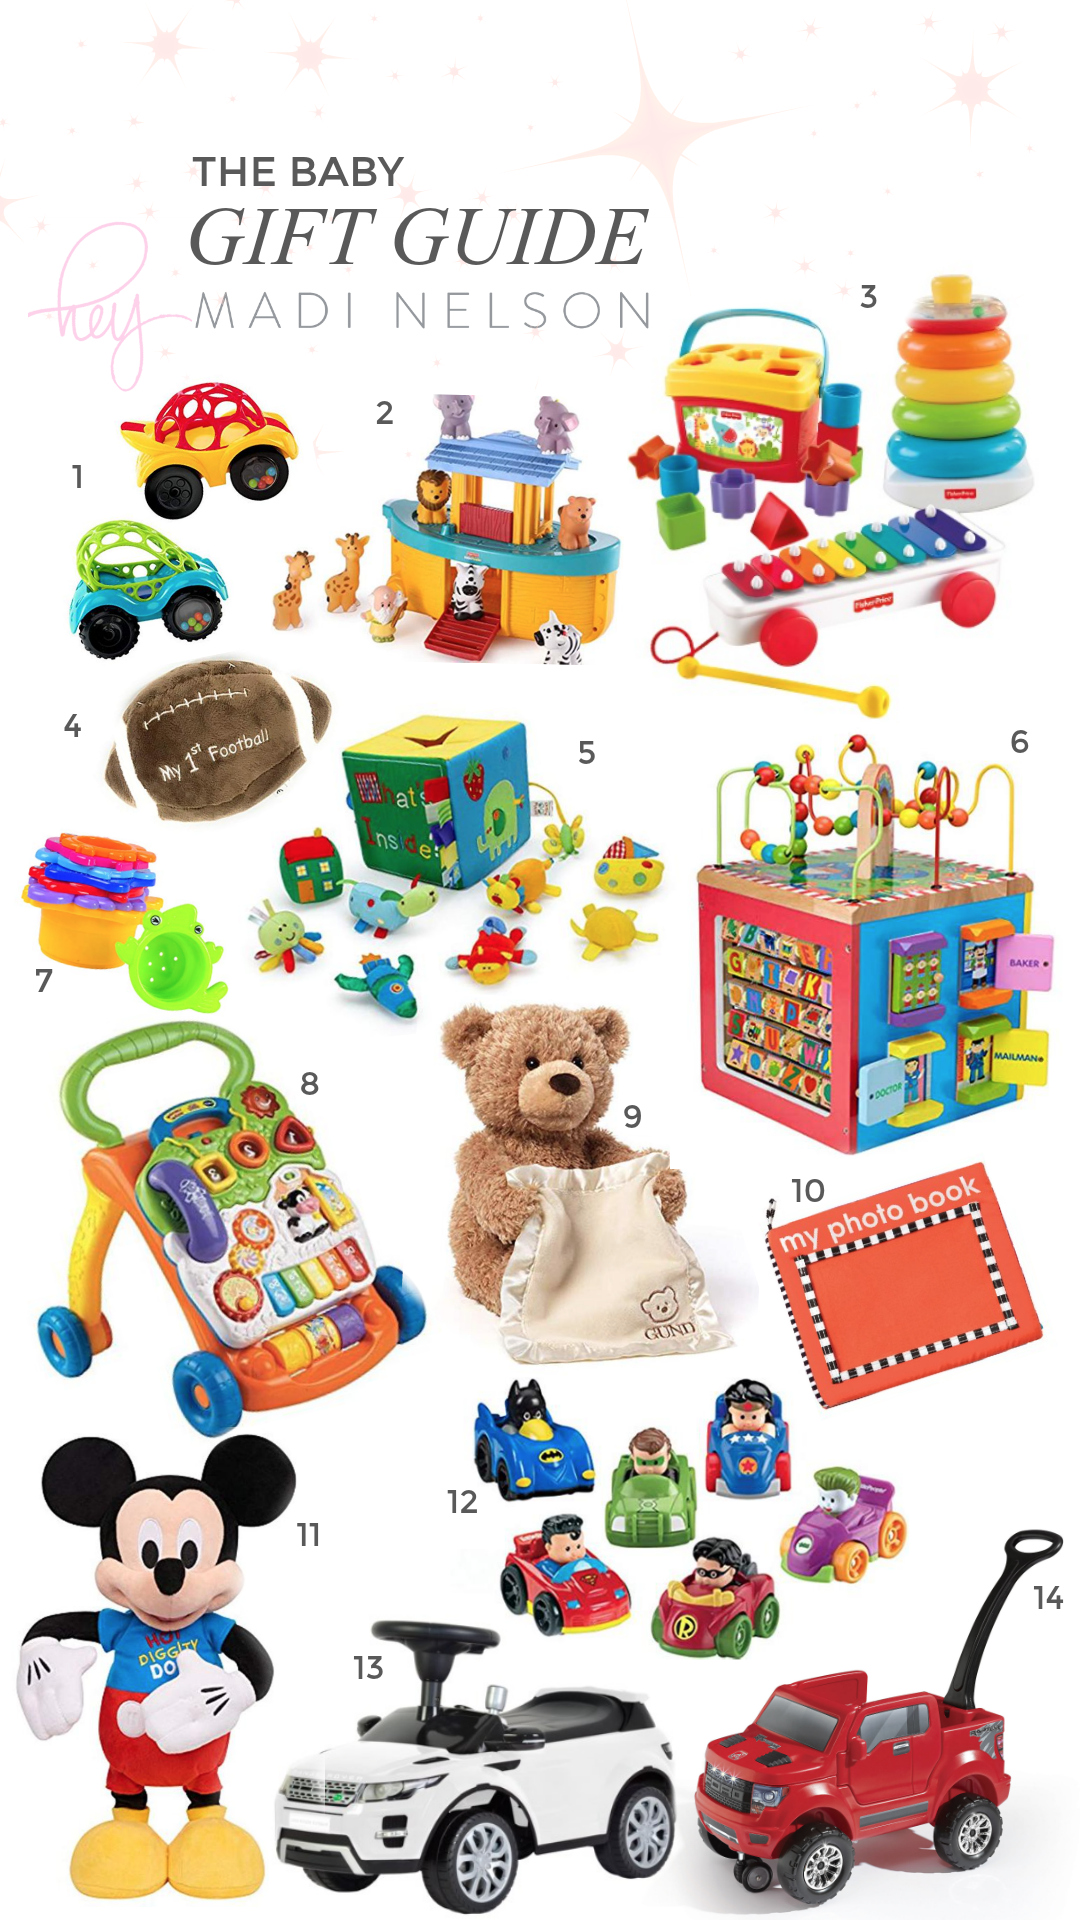 BABY_GIFTGUIDE2018.jpg